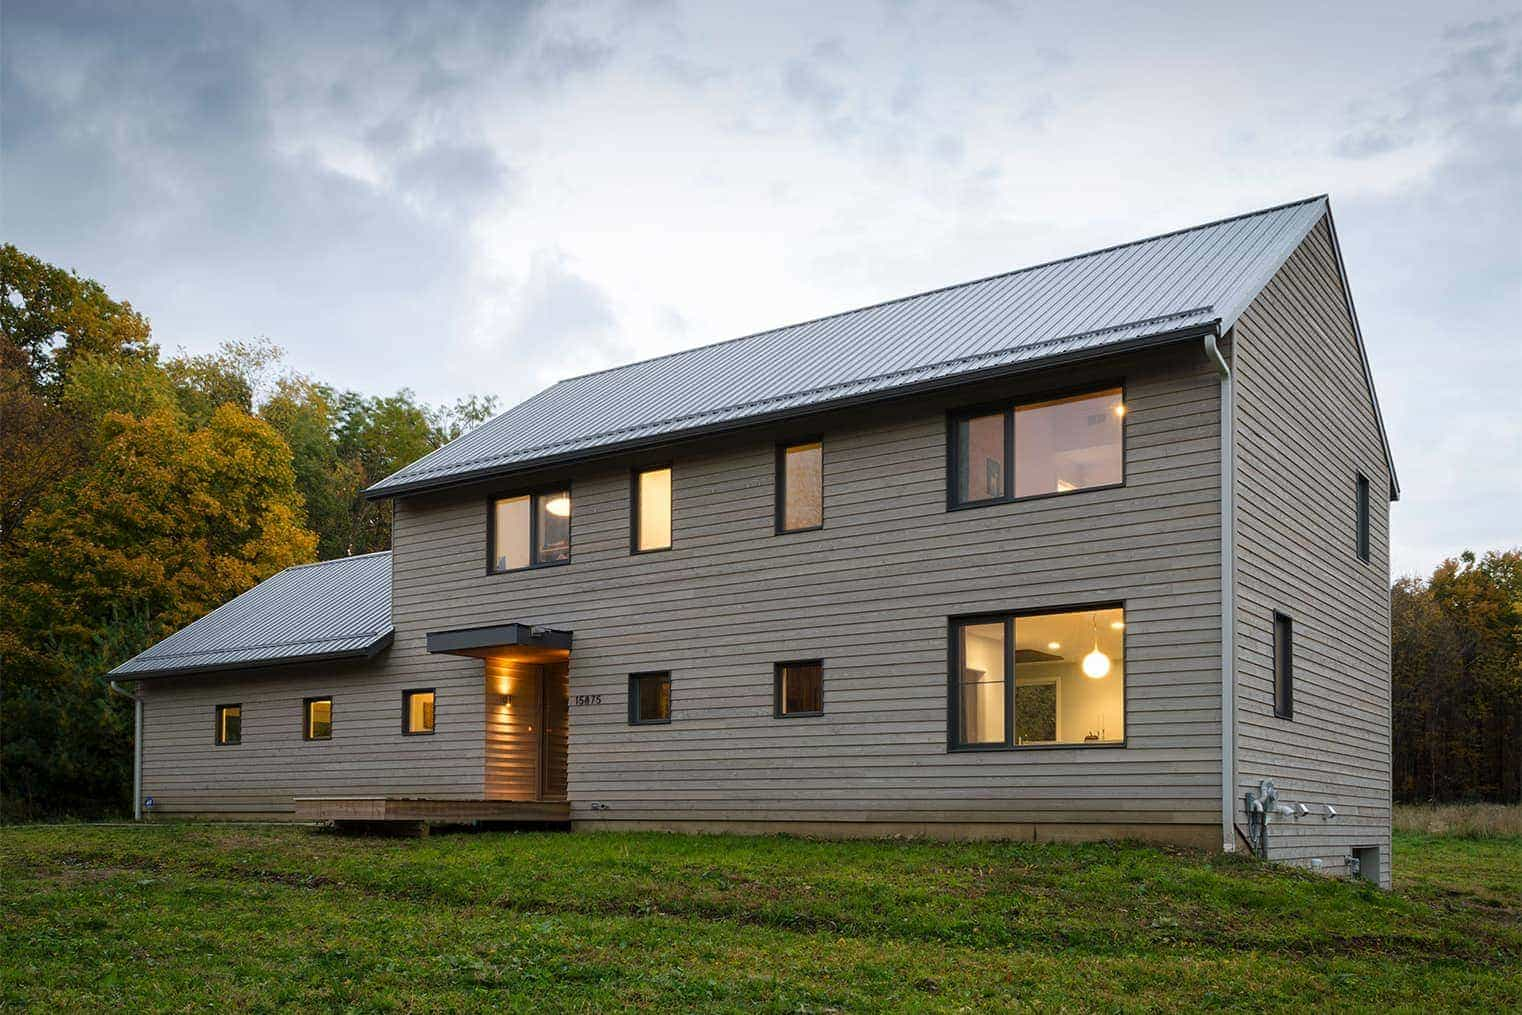 The Modern Farmhouse